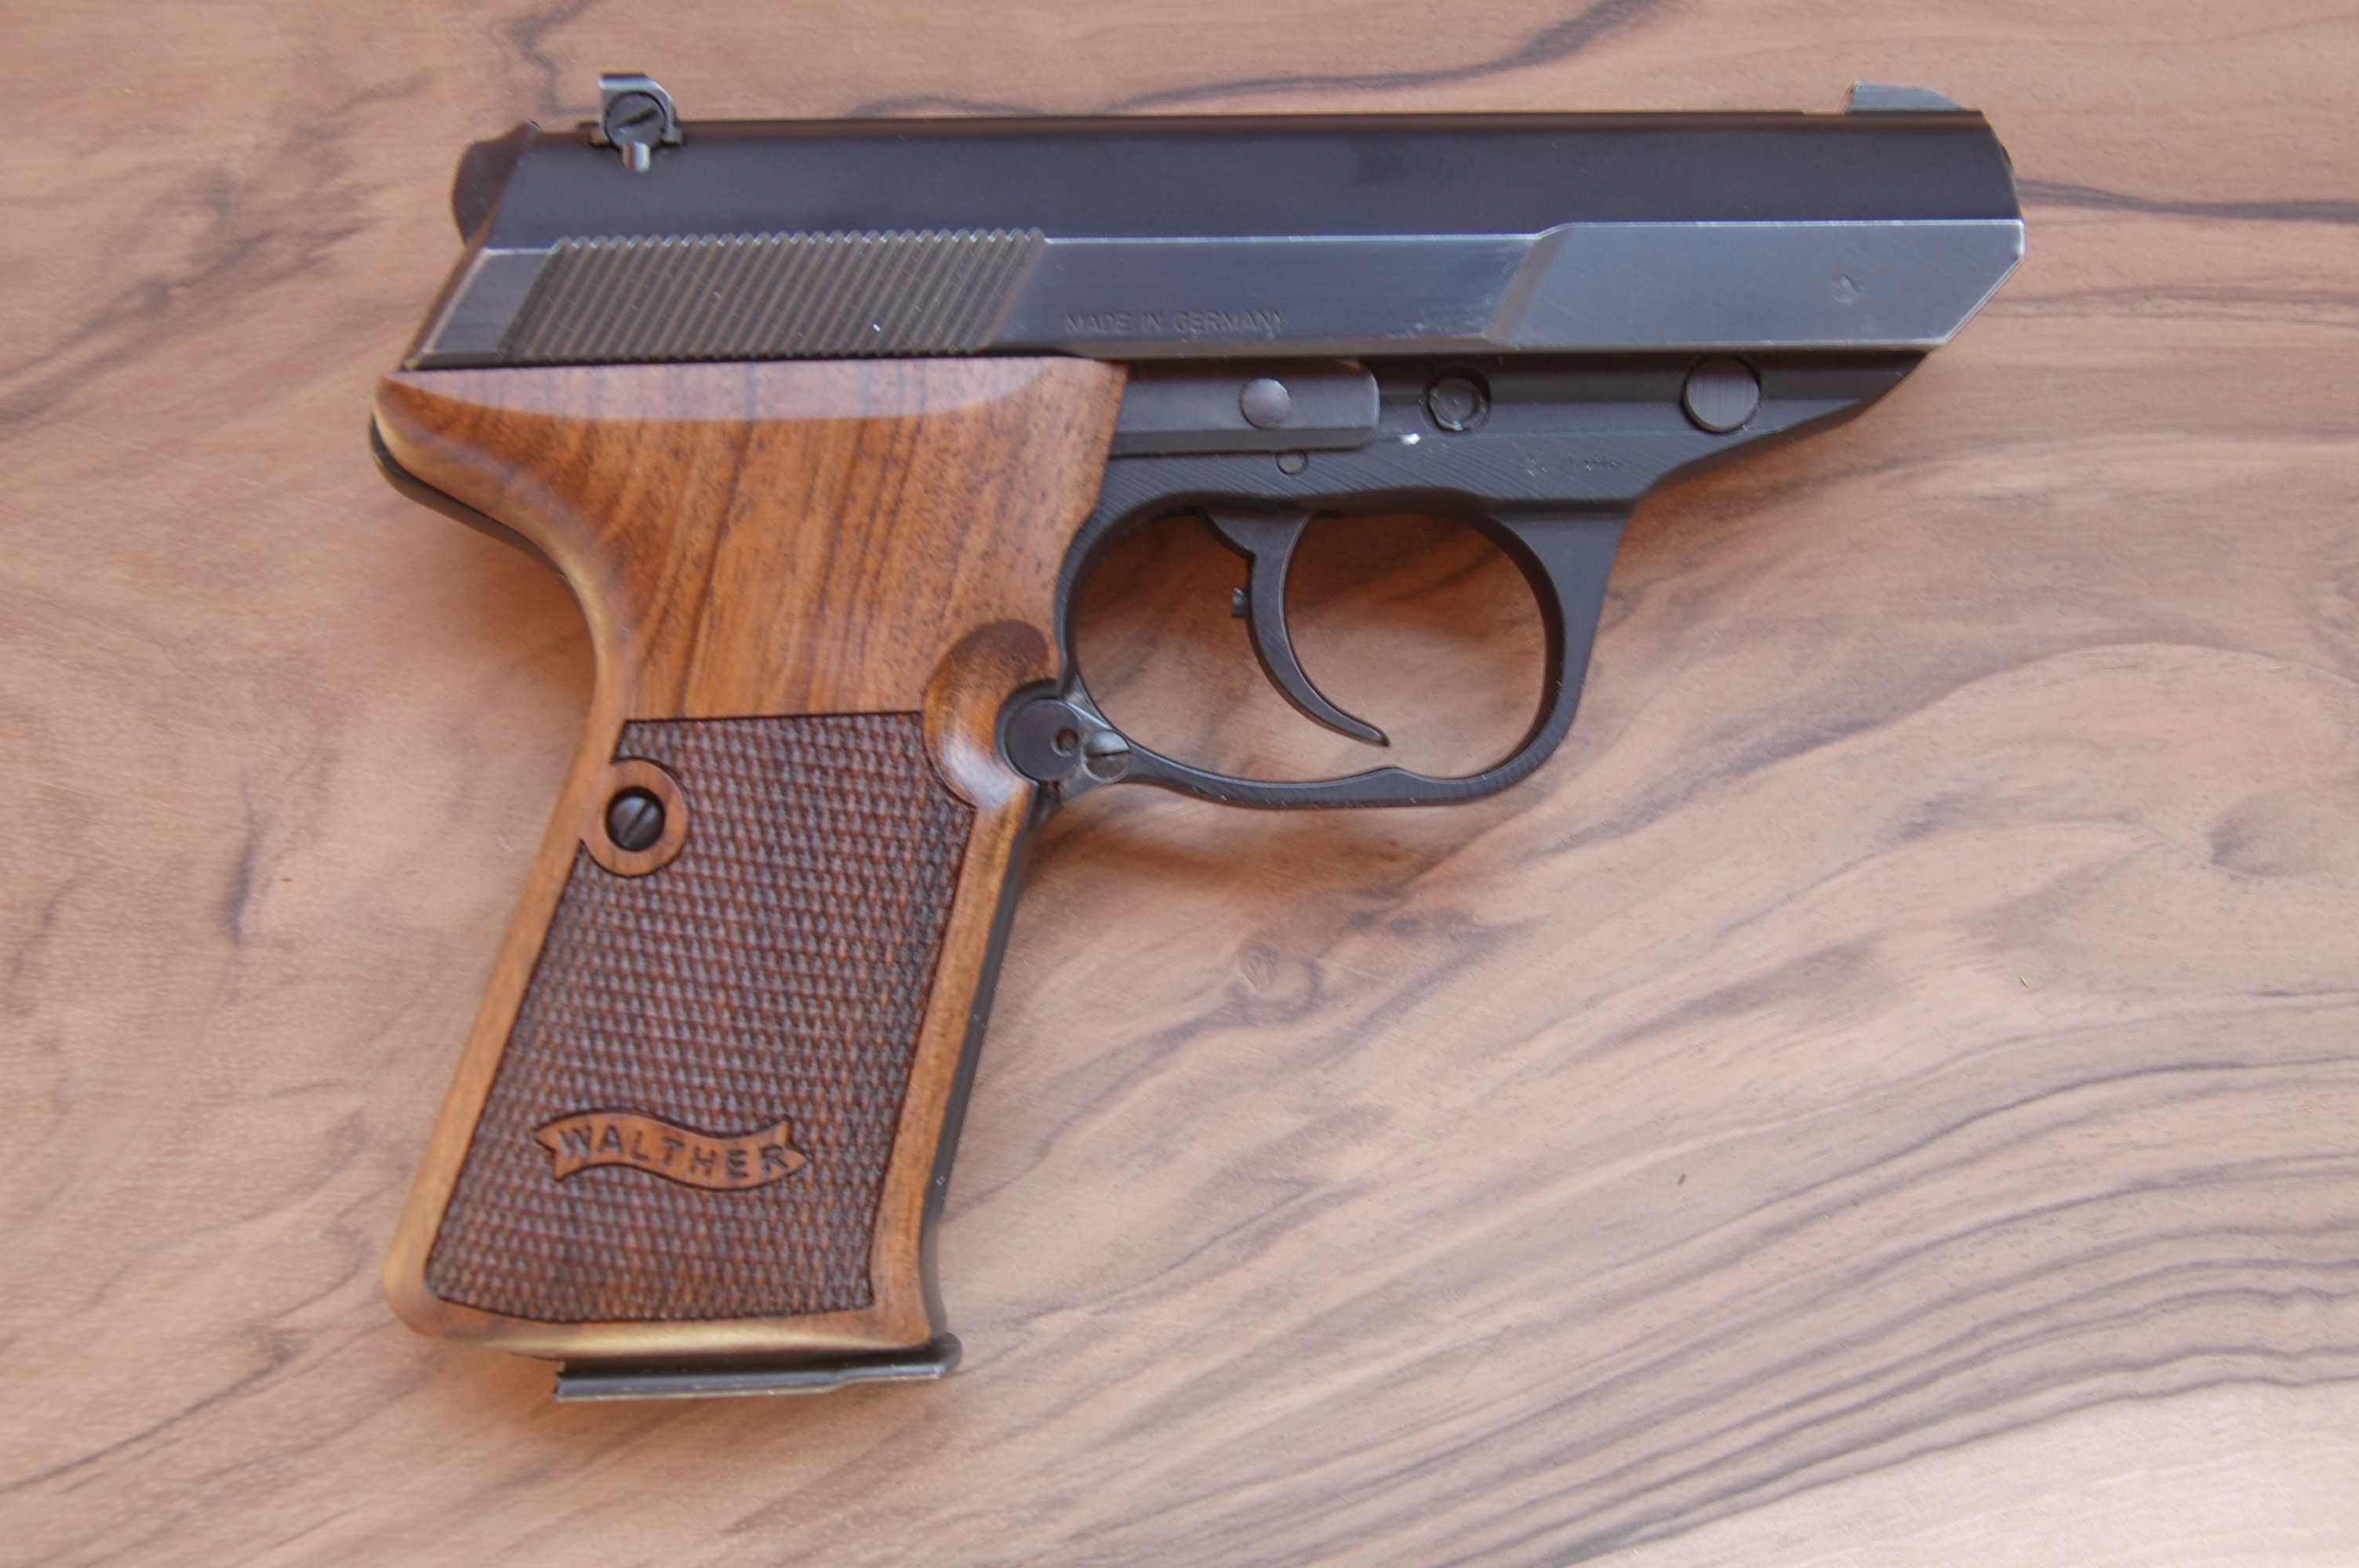 WALTHER P5 Compact side mag. rel. grips (ckrd+logo) - full size